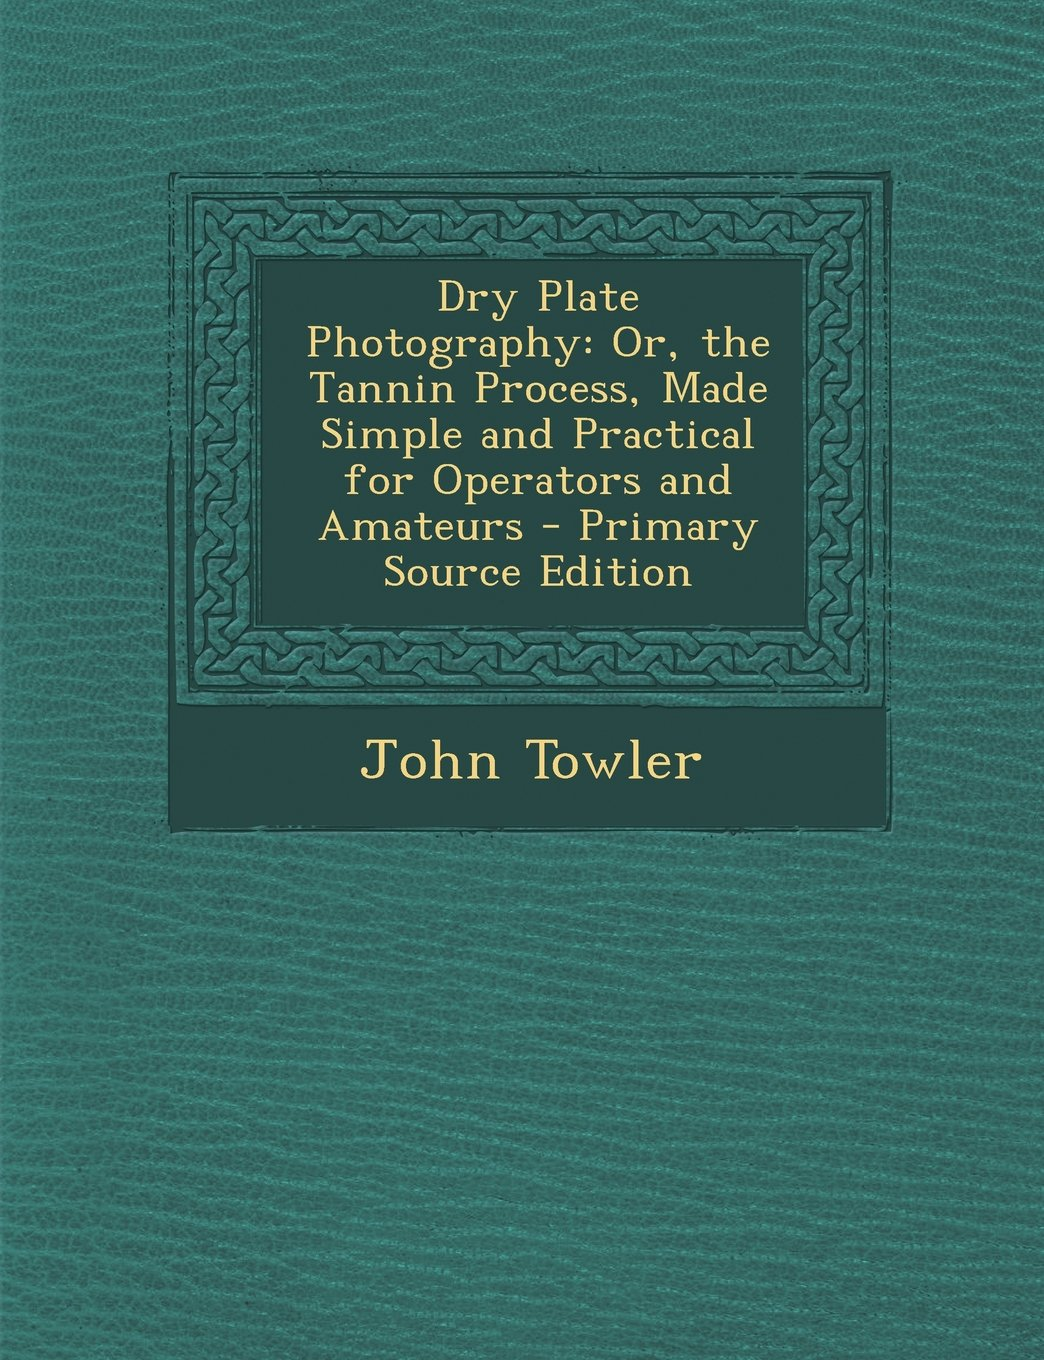 Dry Plate Photography: Or, the Tannin Process, Made Simple and Practical for Operators and Amateurs - Primary Source Edition PDF ePub fb2 ebook